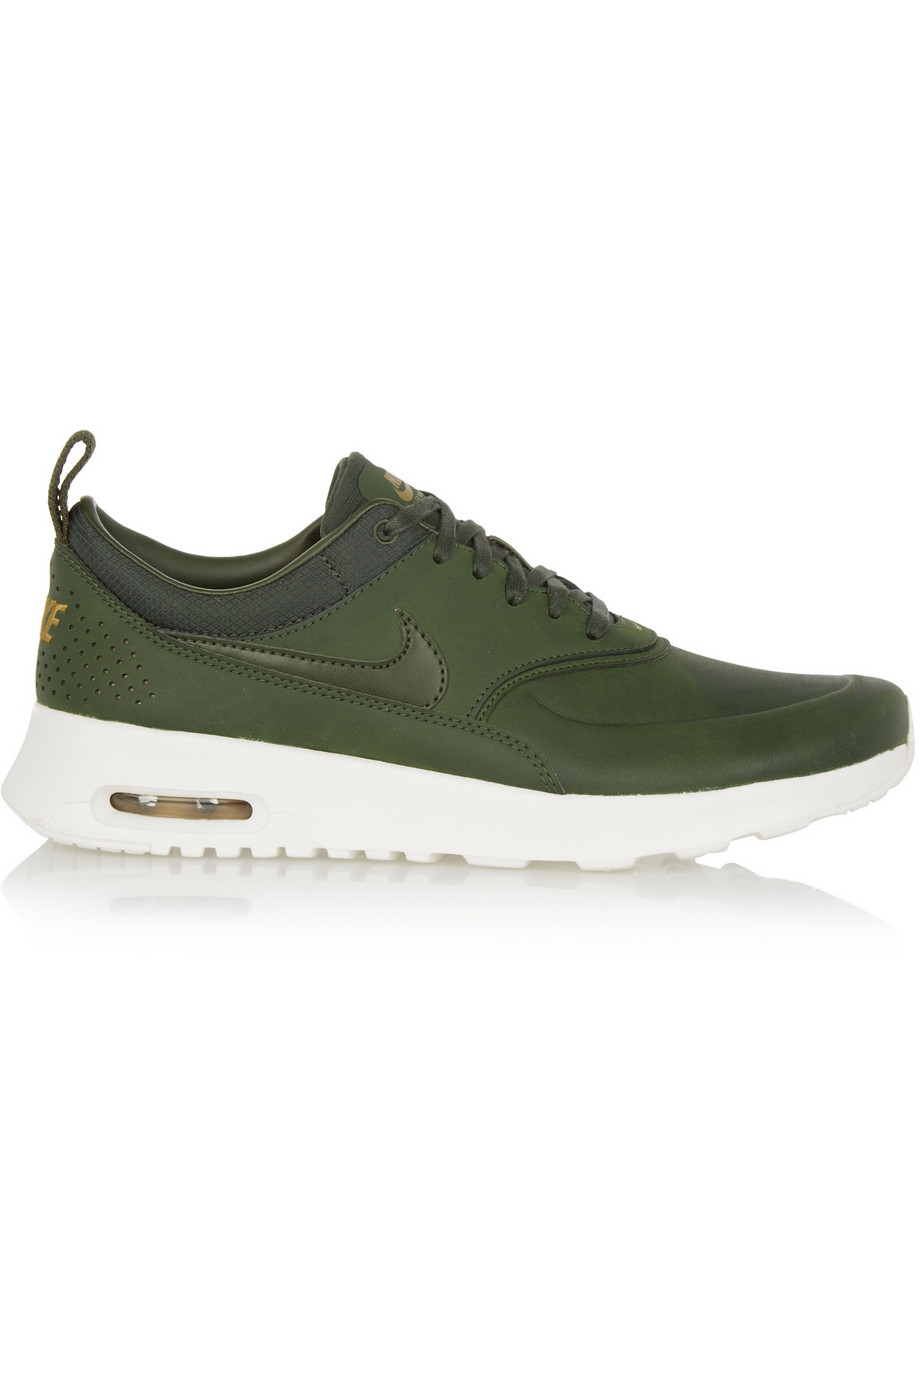 581cc8d5e9 Nike Air Max Thea Premium Leather Sneakers in Green - Lyst